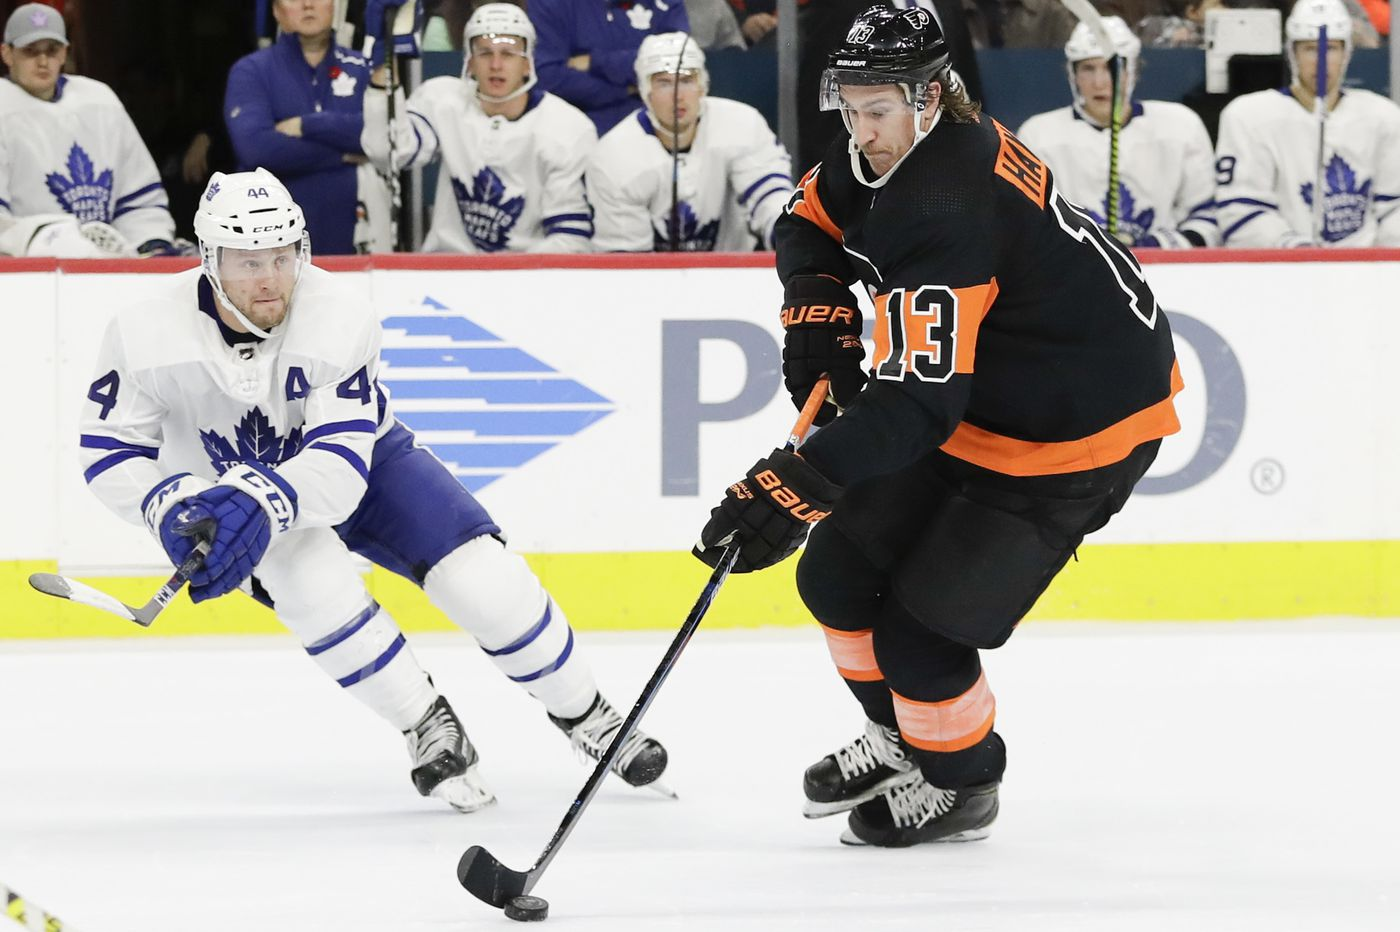 Flyers need more production from James van Riemsdyk, Kevin Hayes, and Jake Voracek